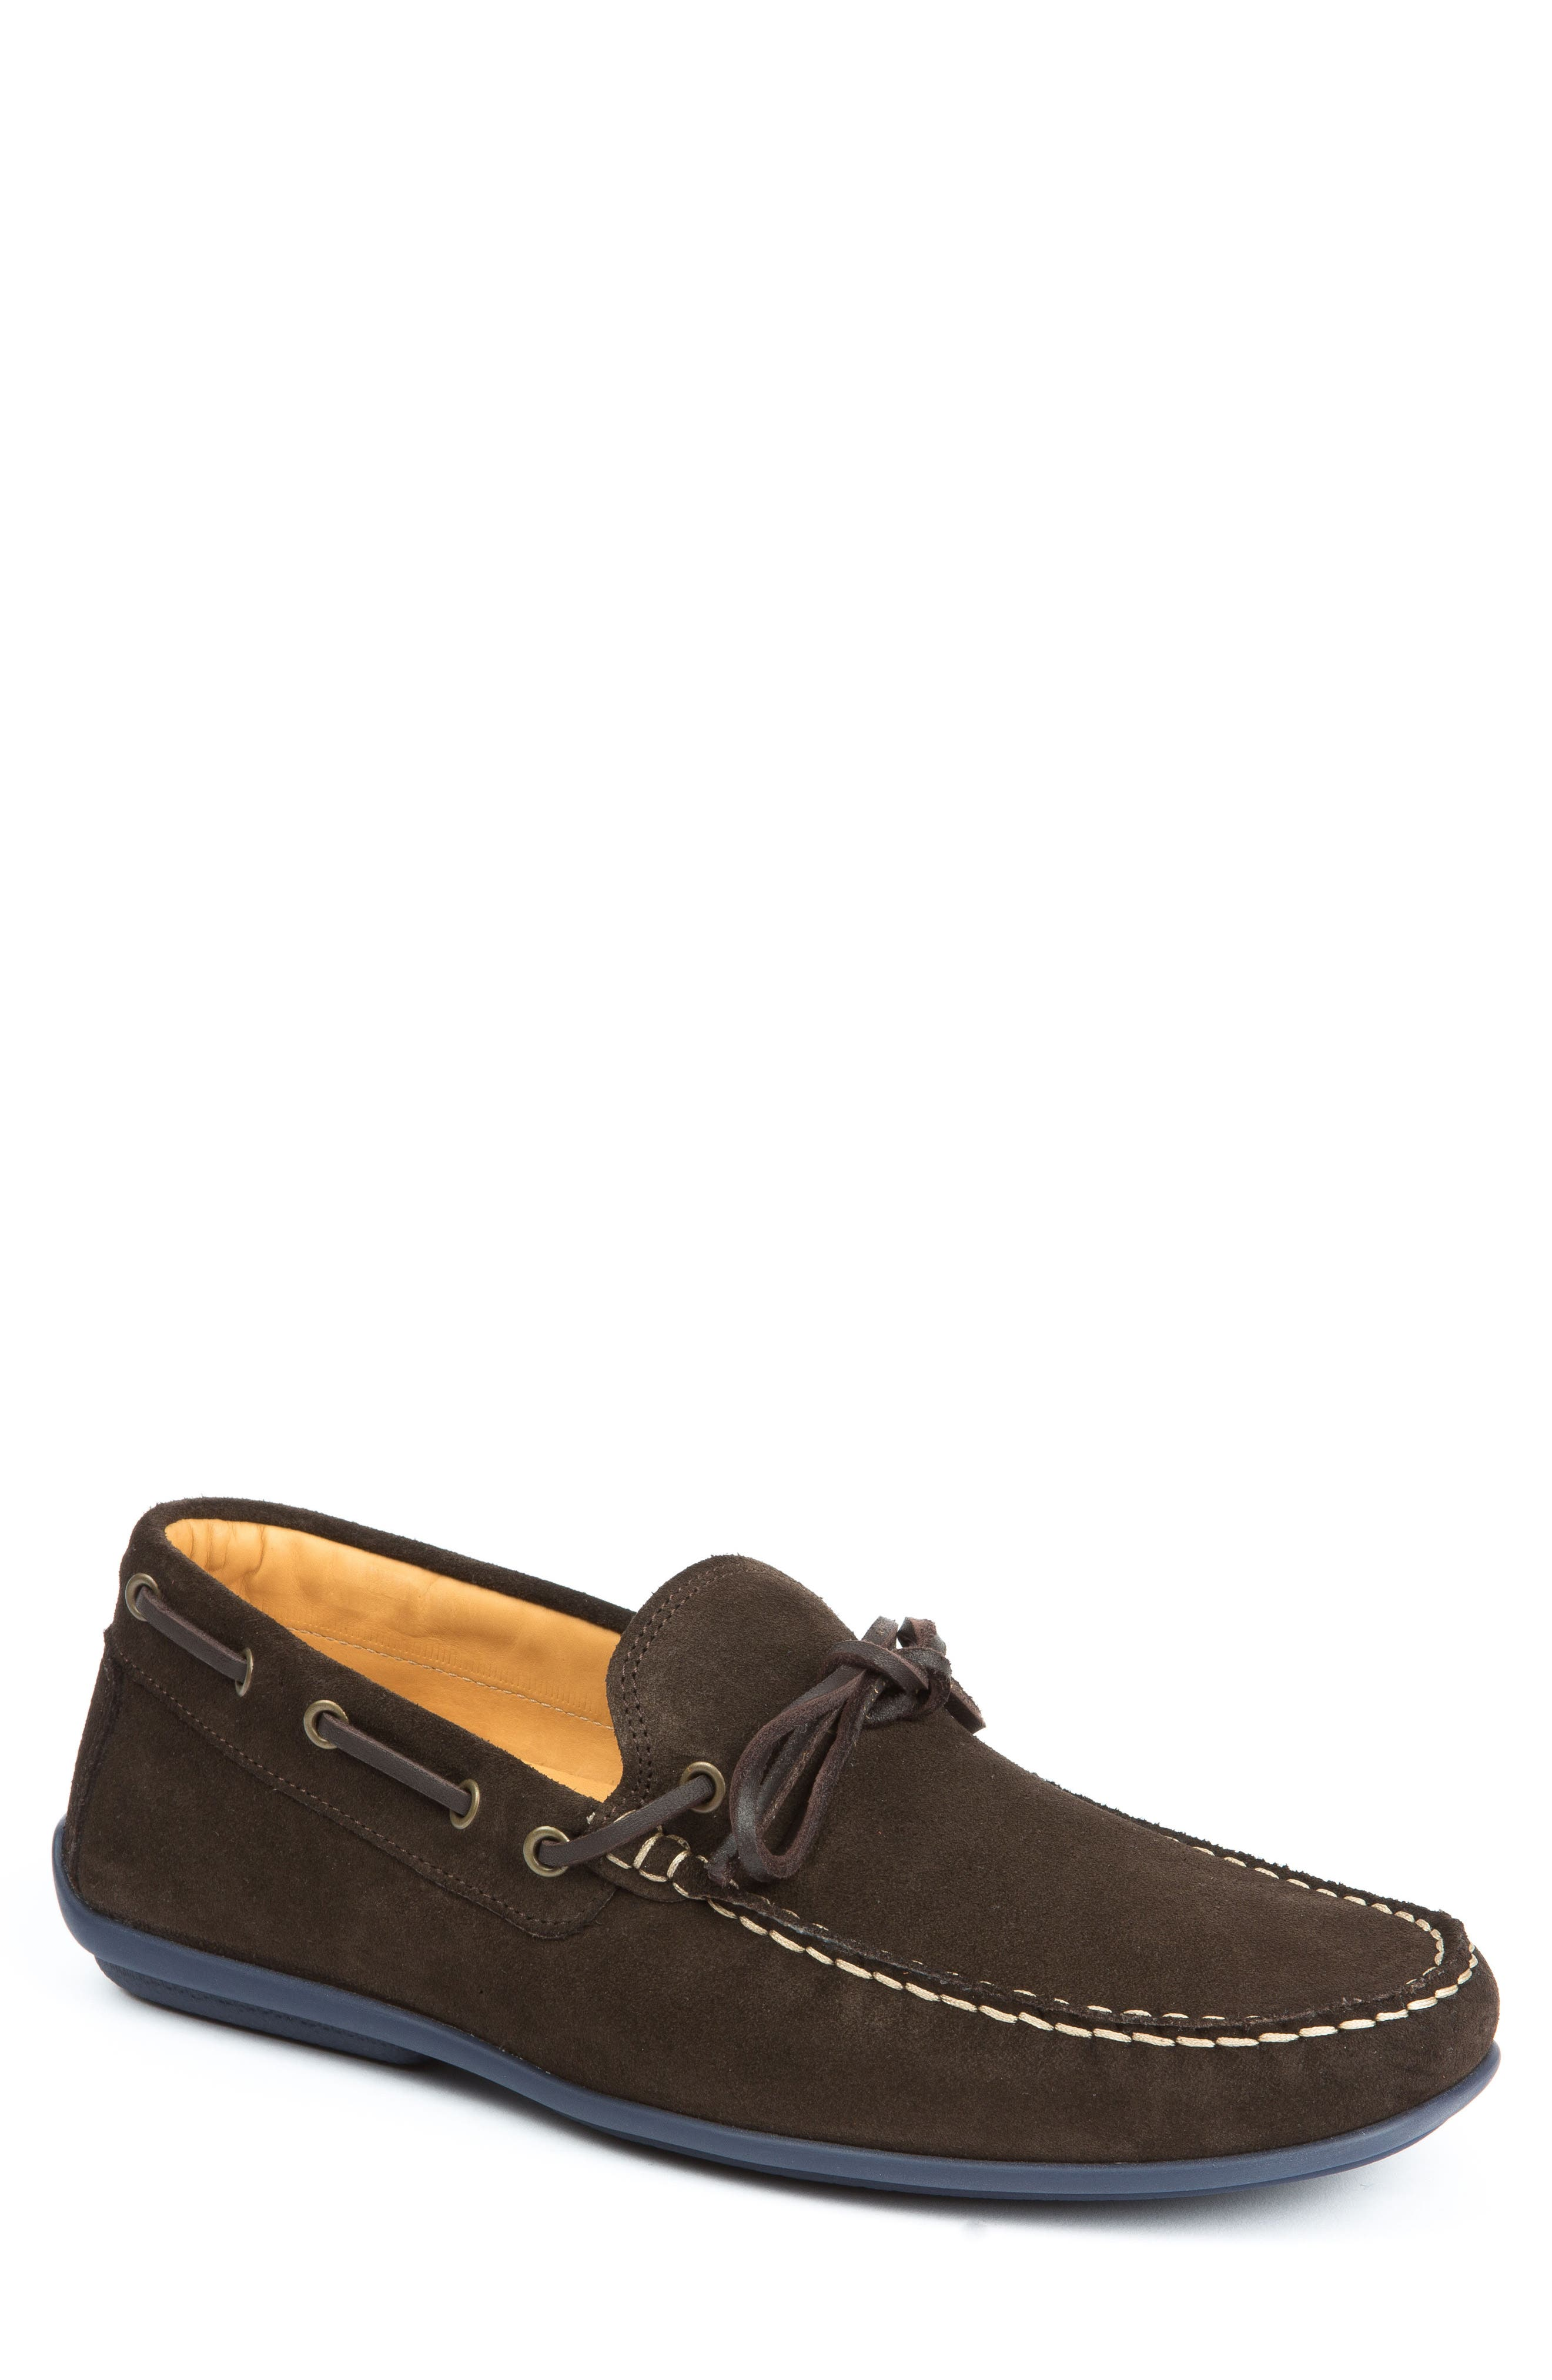 Kingstons Driving Shoe,                         Main,                         color, Brown Suede